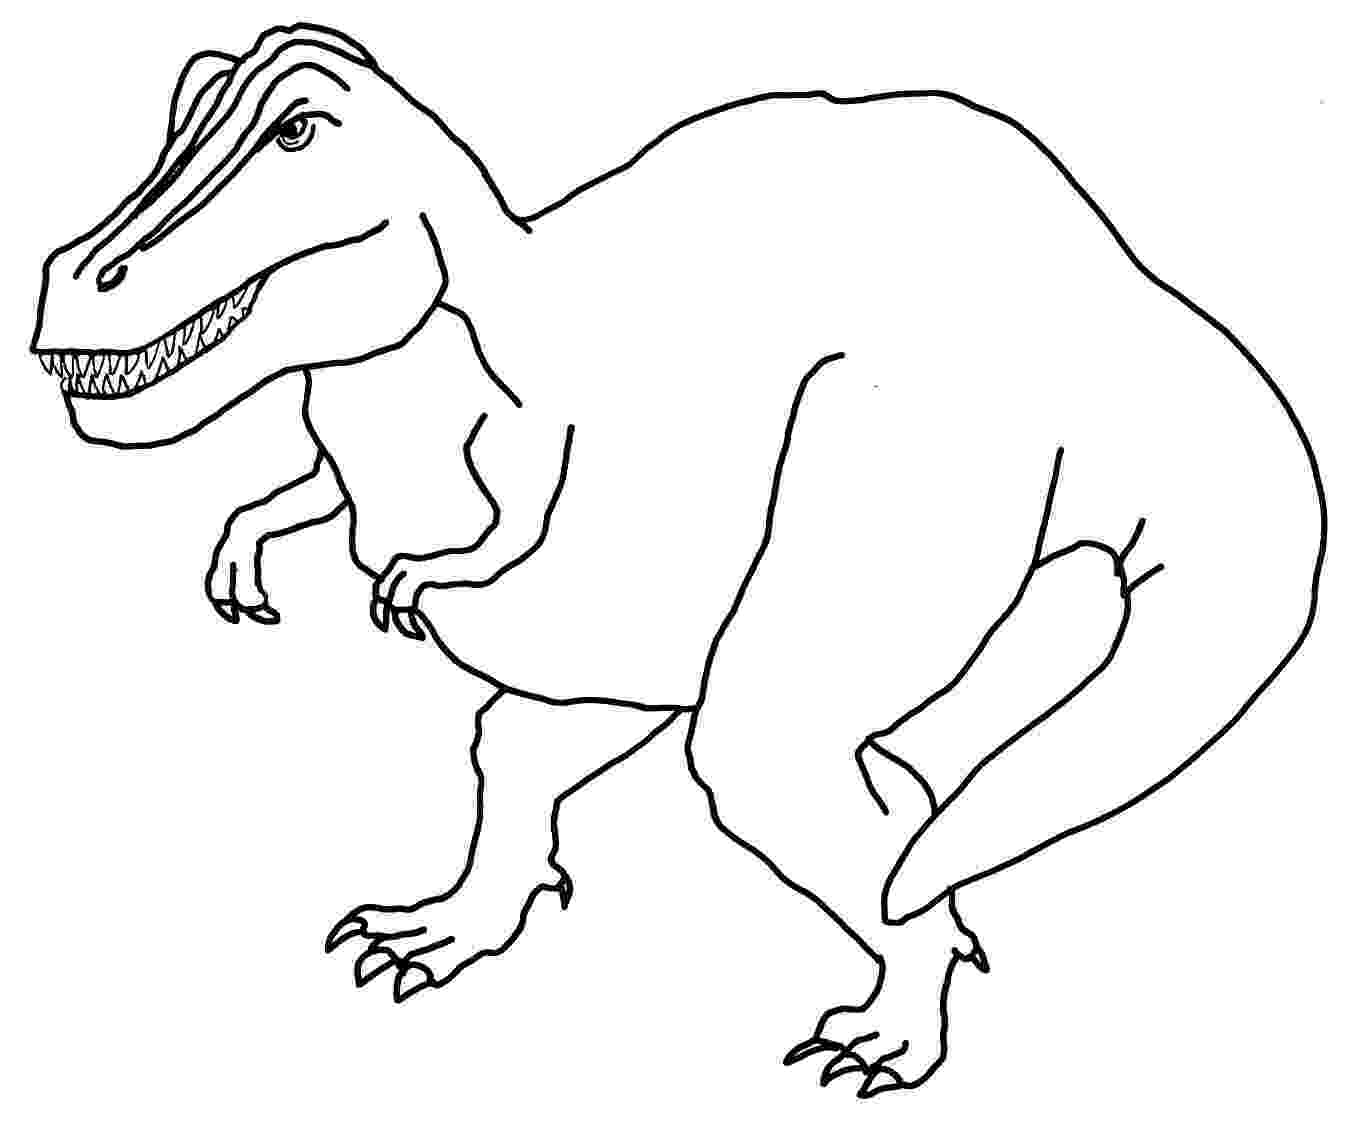 dinosaur color free coloring pages printable pictures to color kids color dinosaur